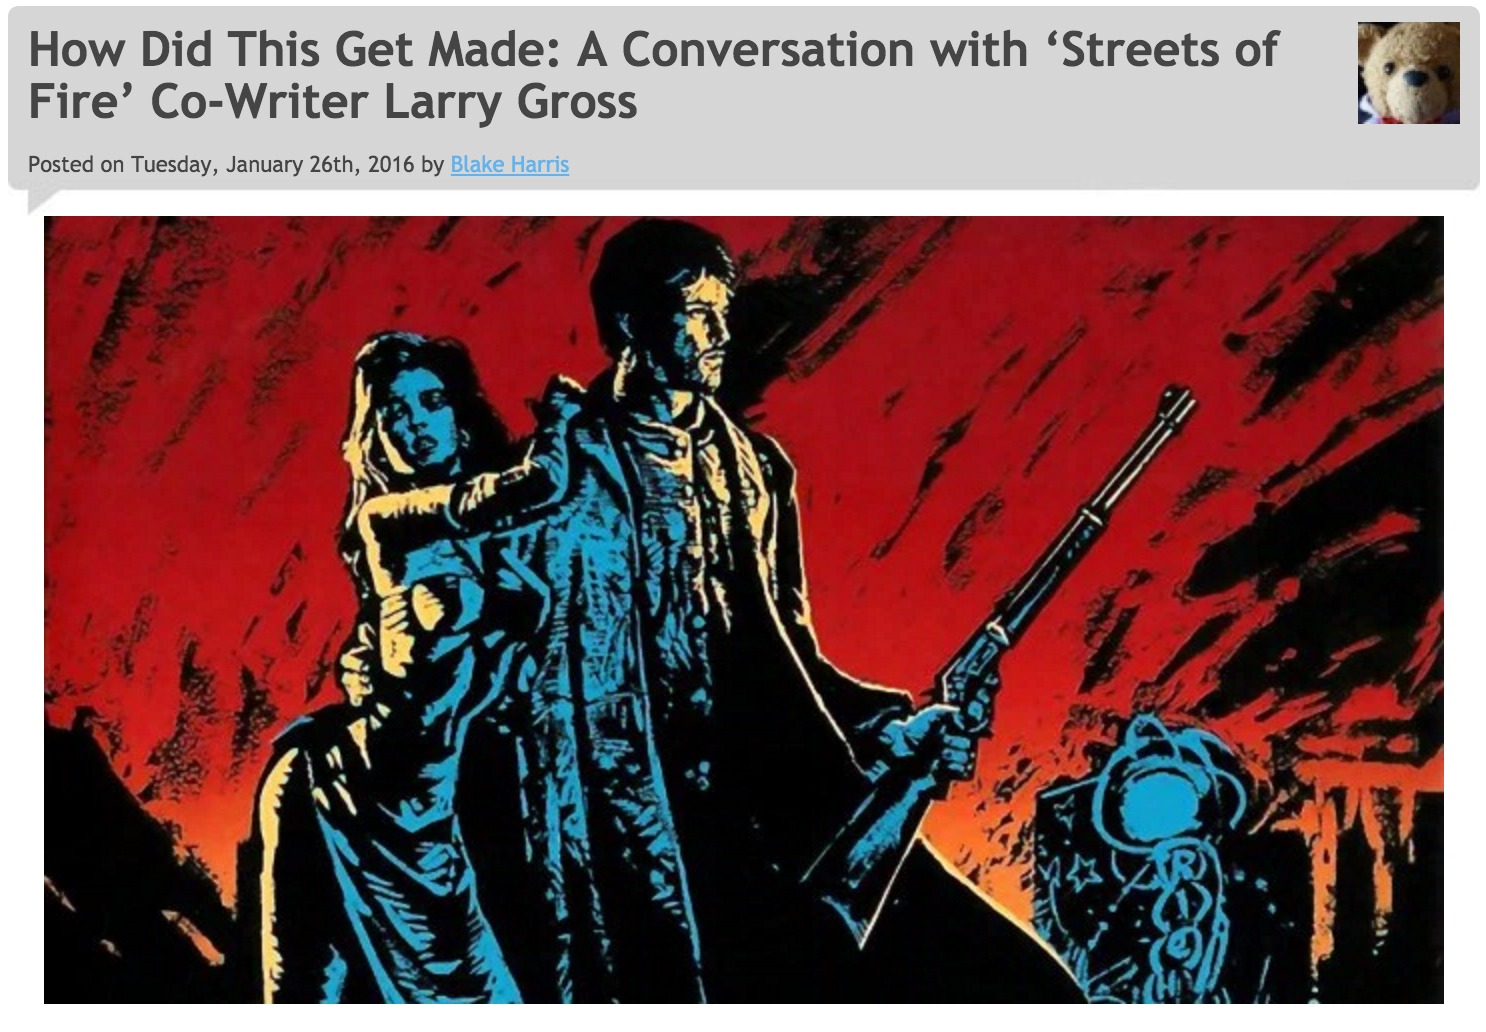 1/26/16: STREETS OF FIRE